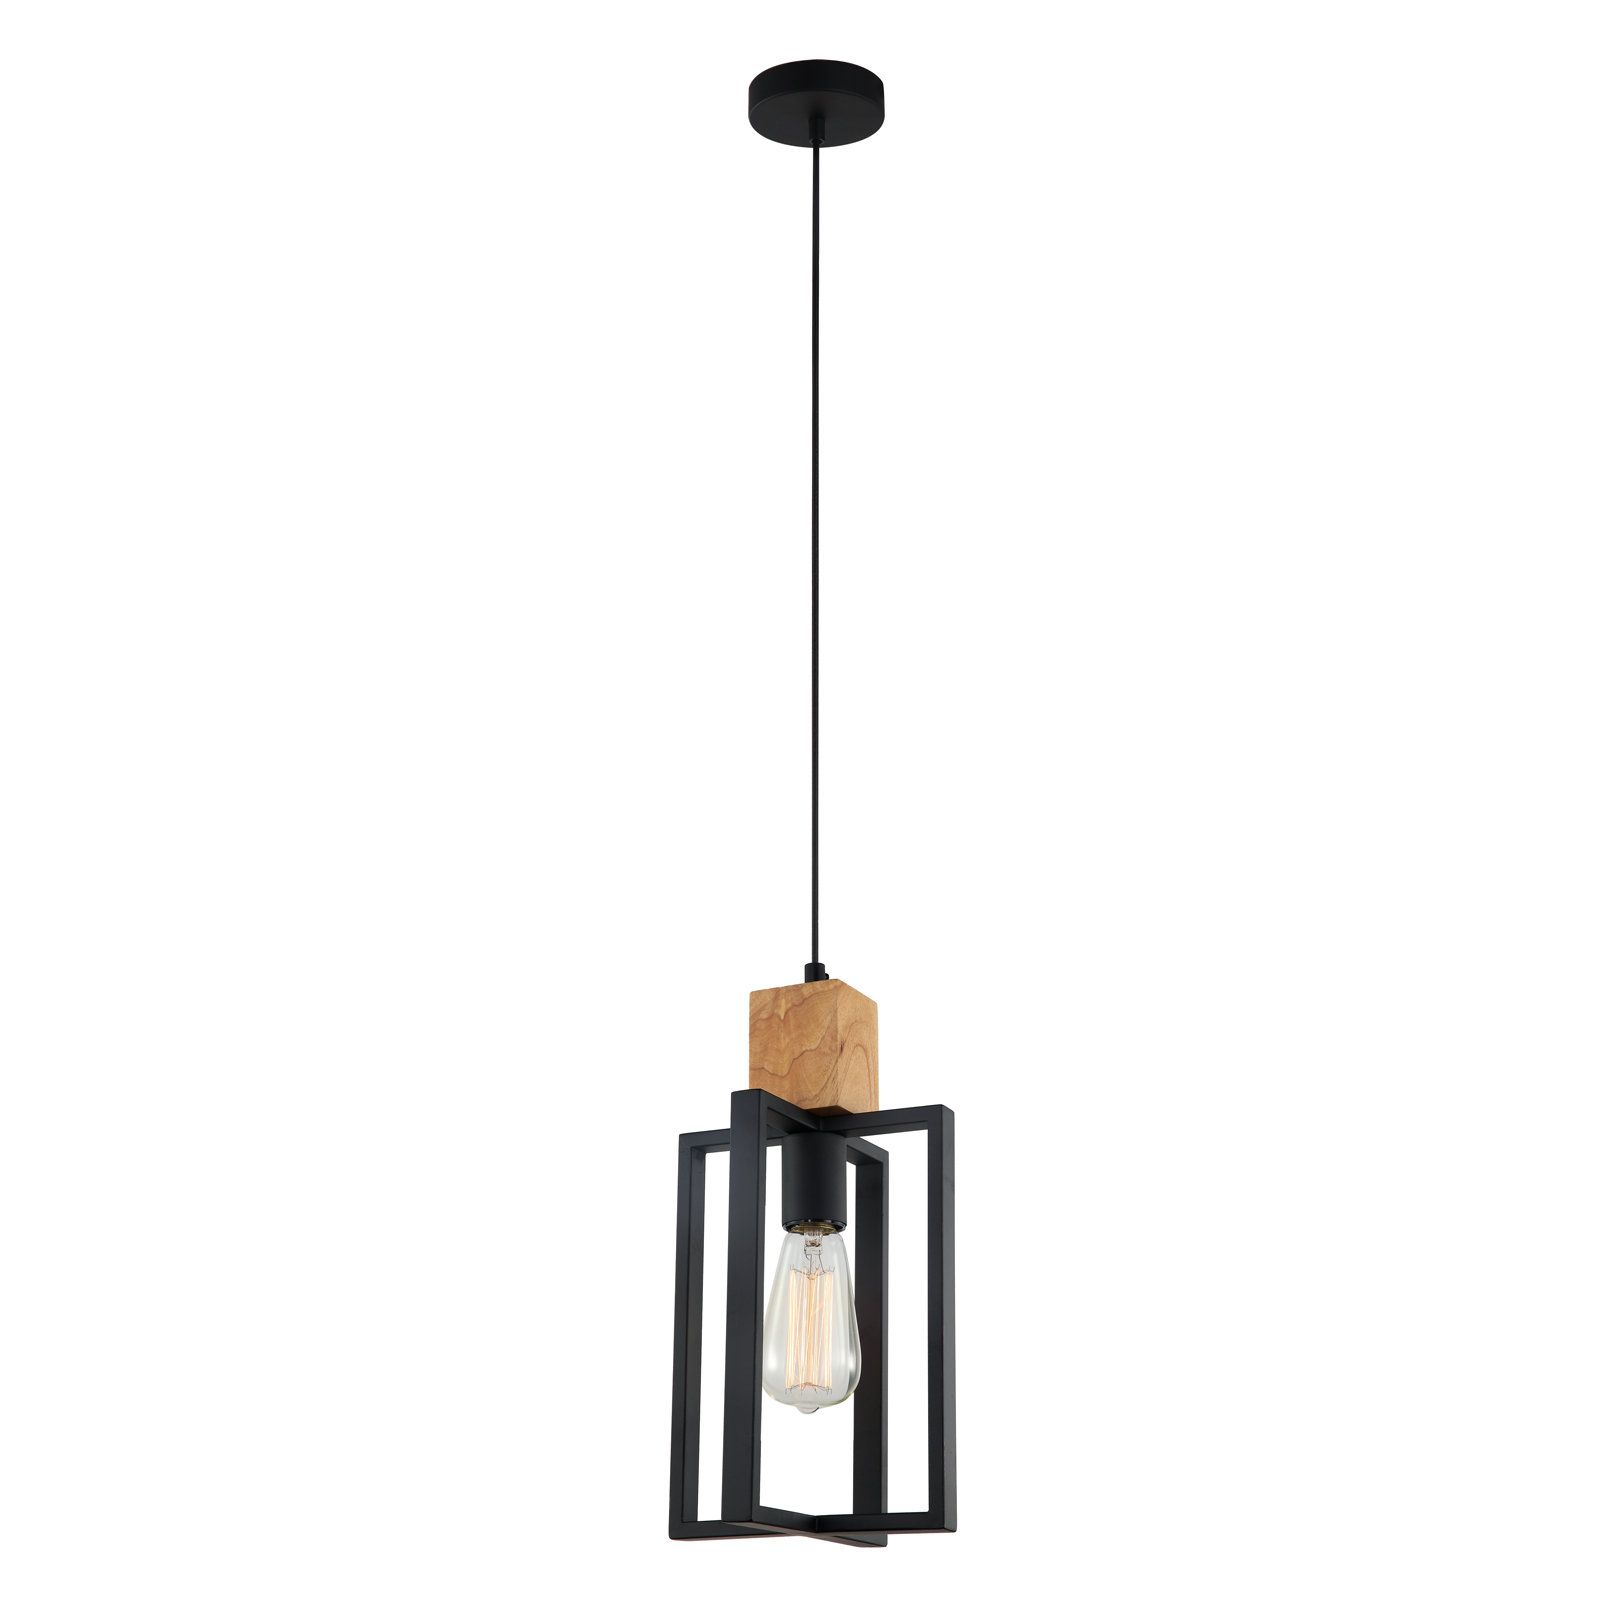 Lampada castelli black metal cross frame with timber top pendant lampada castelli black metal cross frame with timber top pendant light mozeypictures Image collections